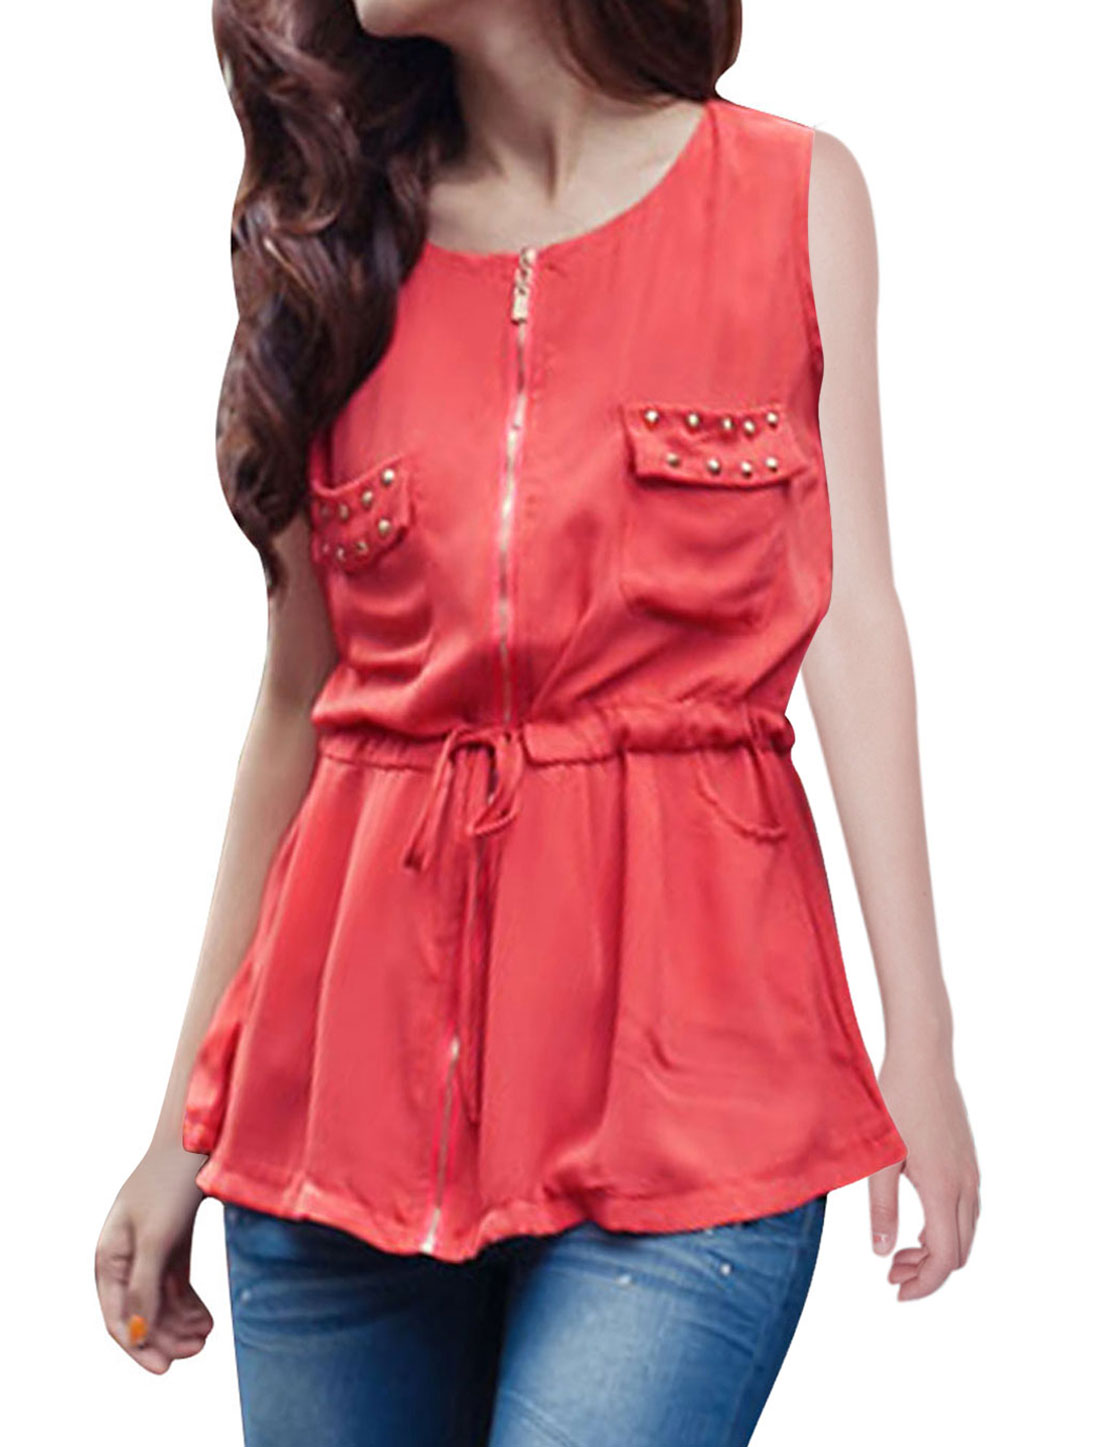 Women Watermelon Red Round Neck Sleeveless Chest Pockets Zip Shirt S